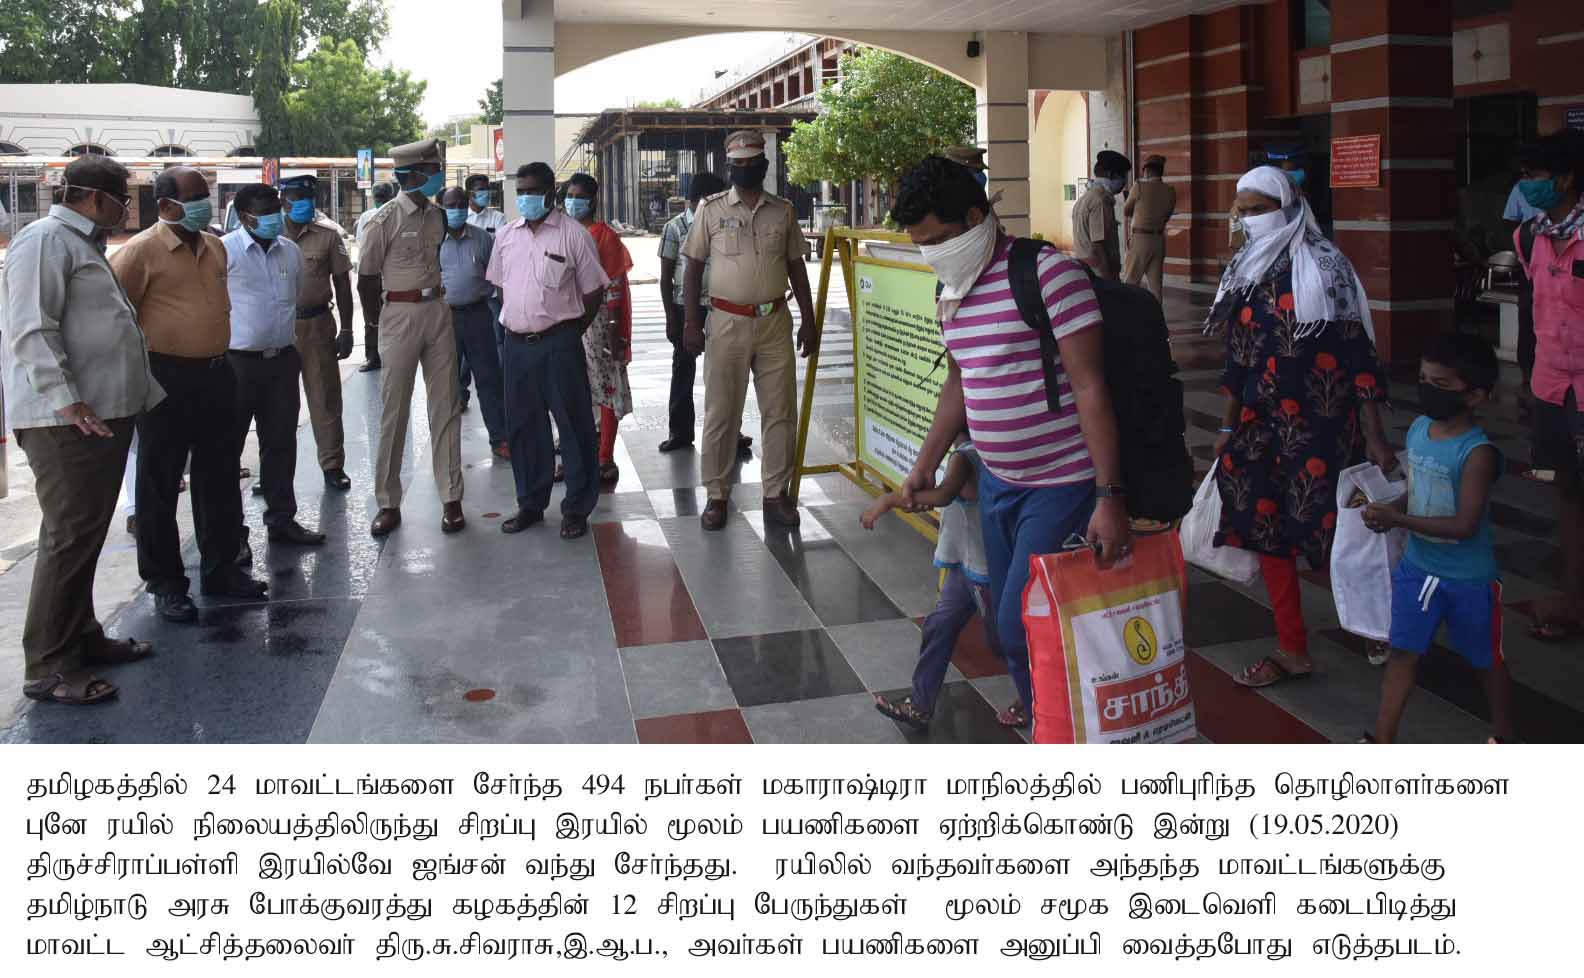 District collector Inspected the transport of migrant workers arrived from Pune to the respective Districts on 19-05-2020